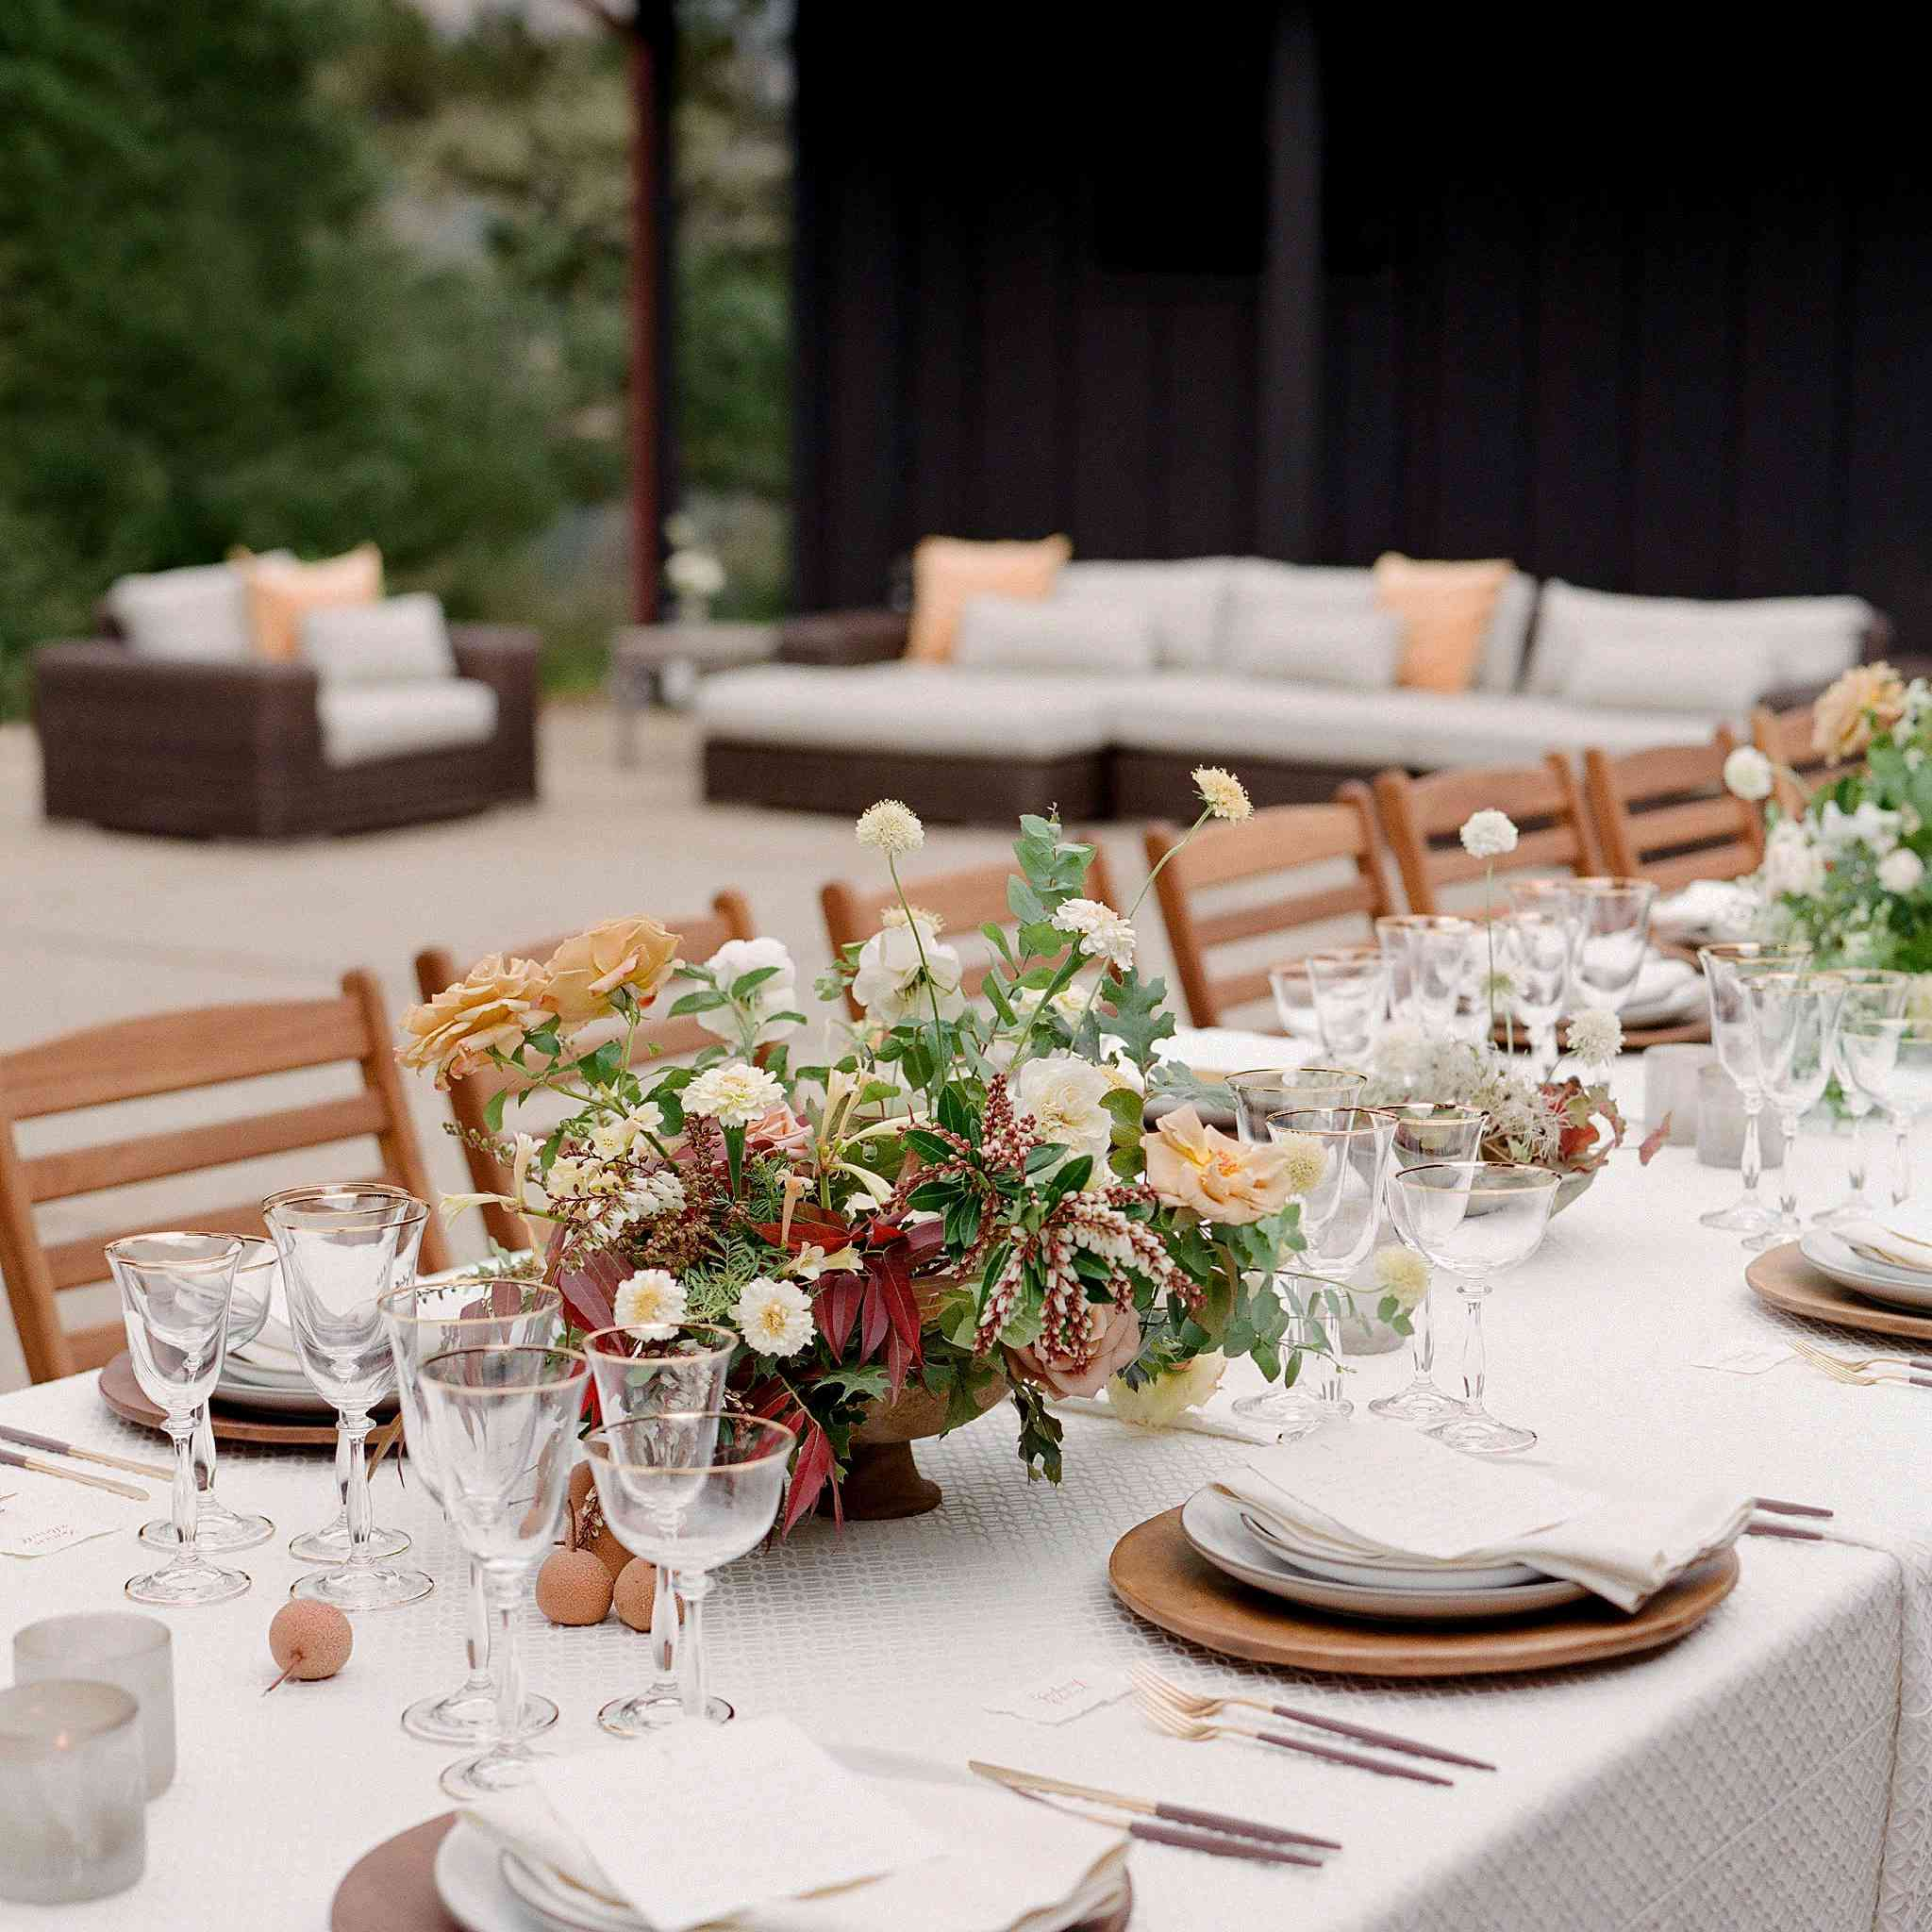 <p>dinner table</p><br><br>